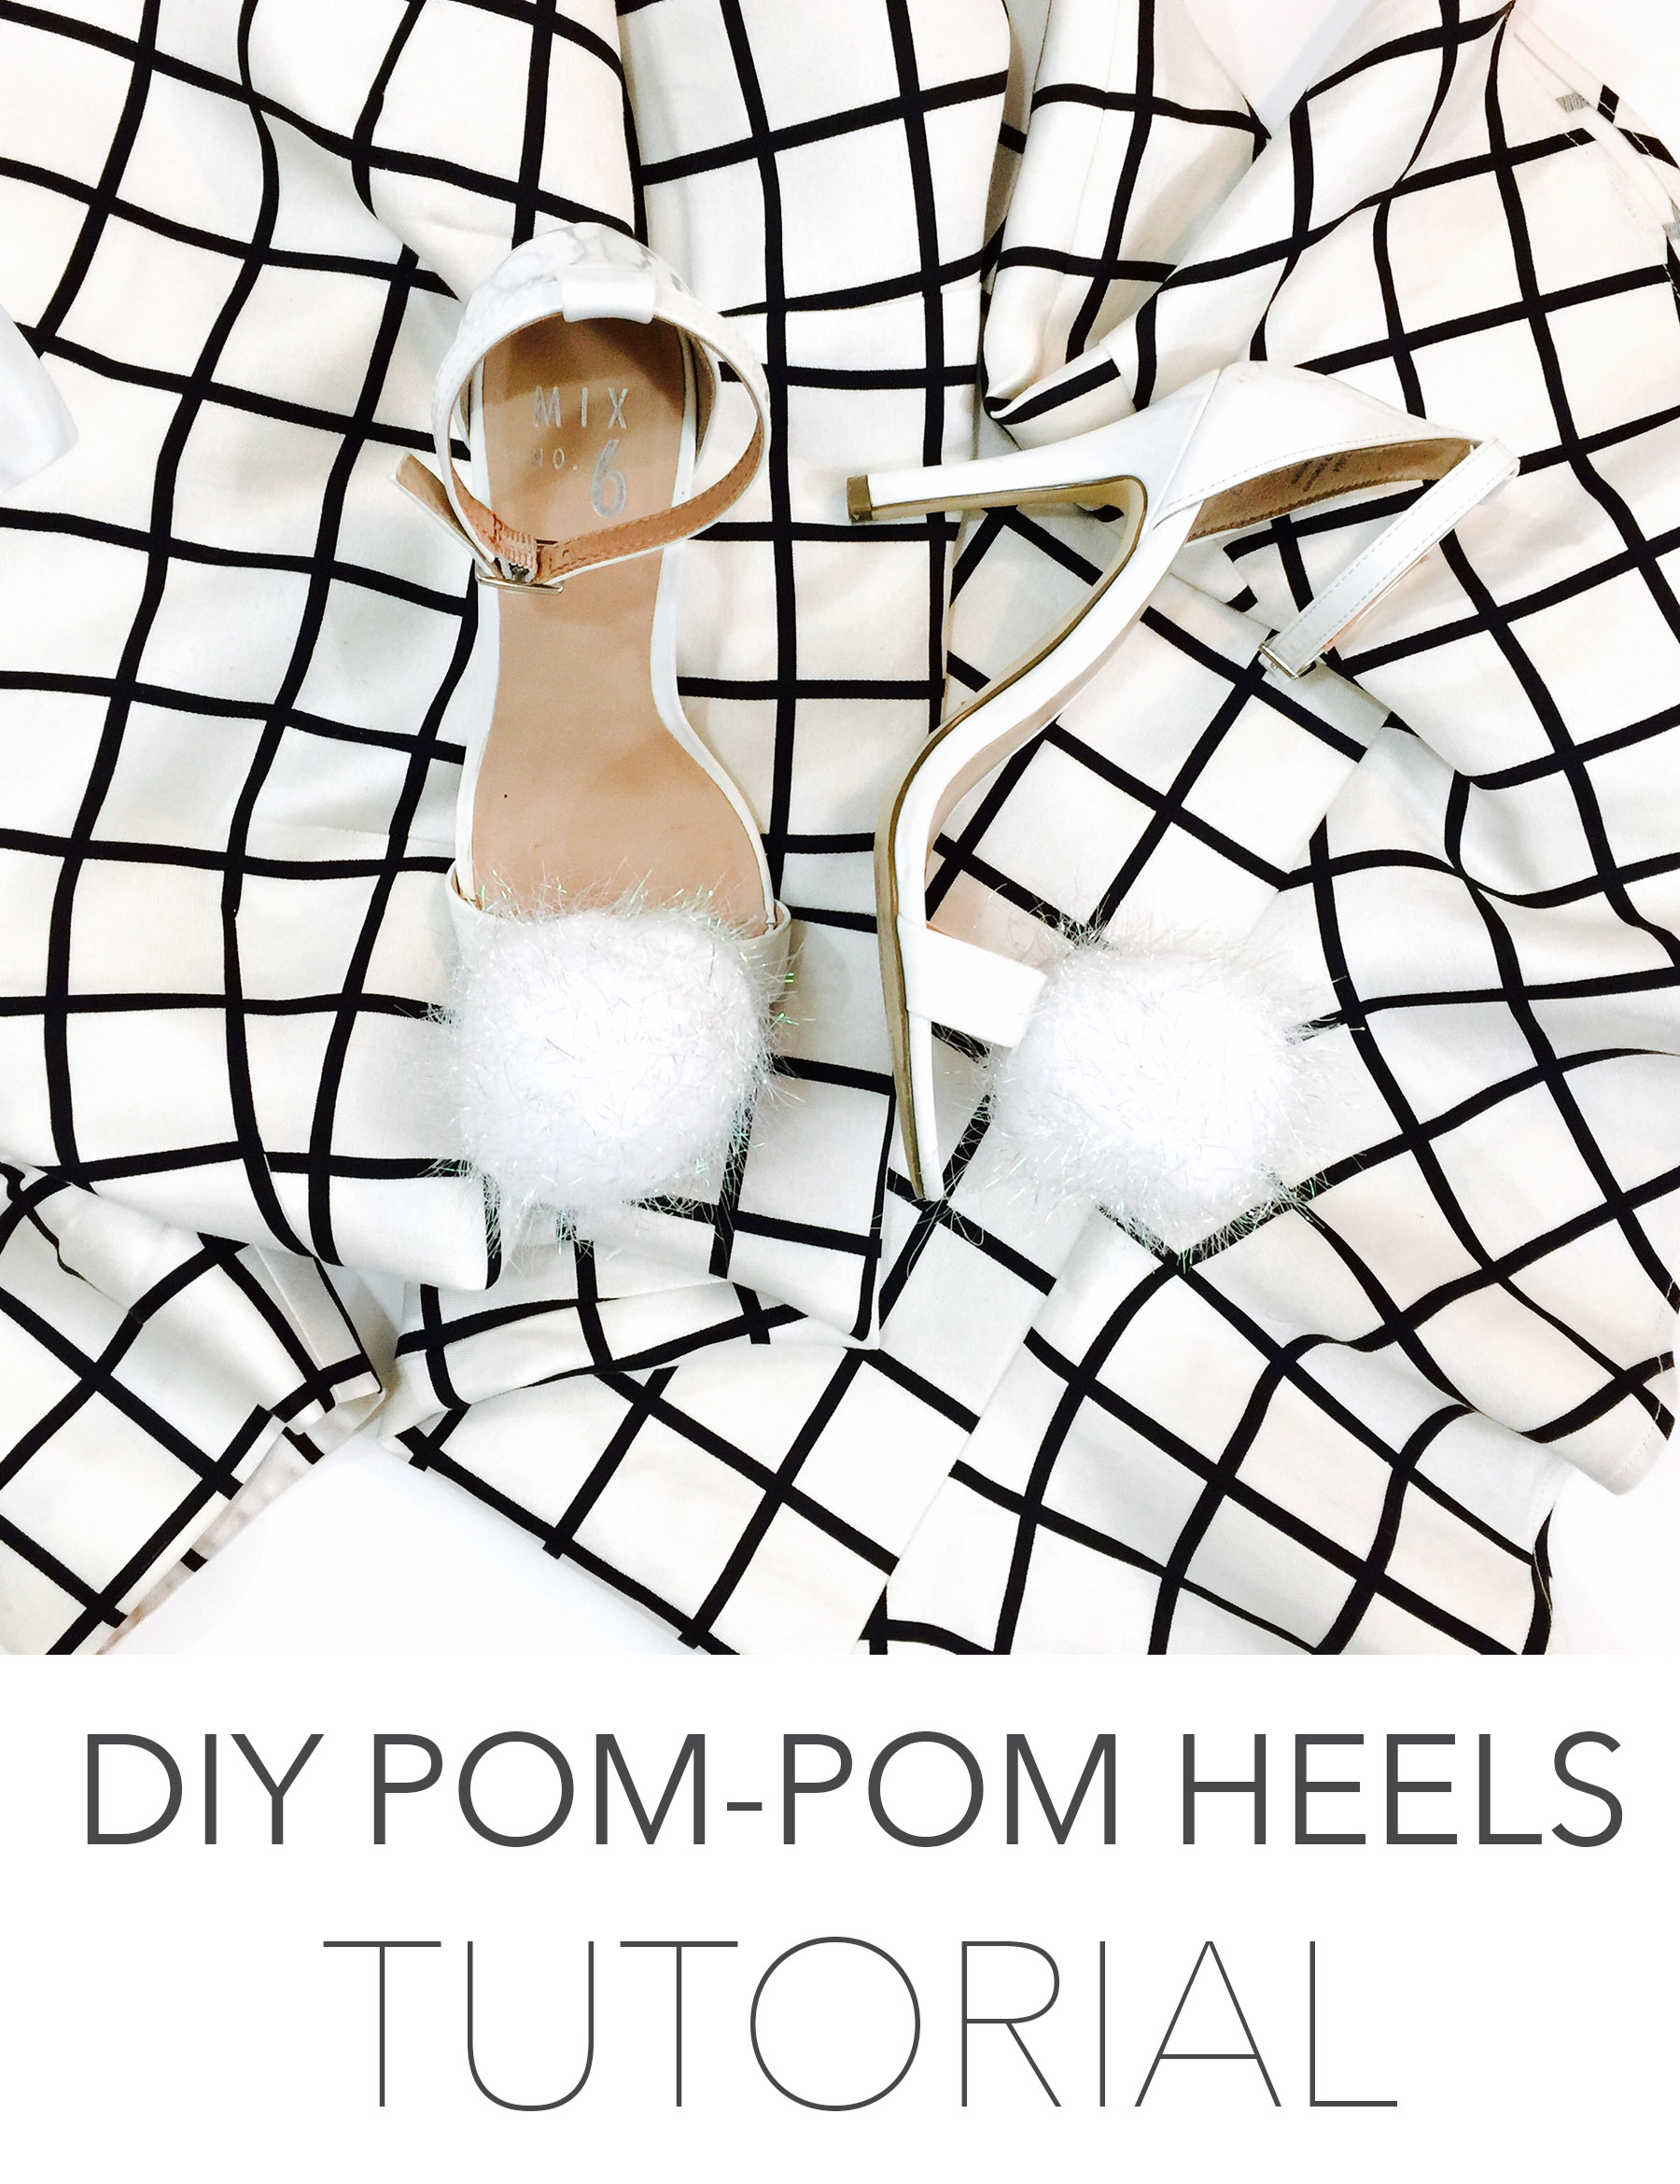 diy pom pom heels tutorial modest goddess